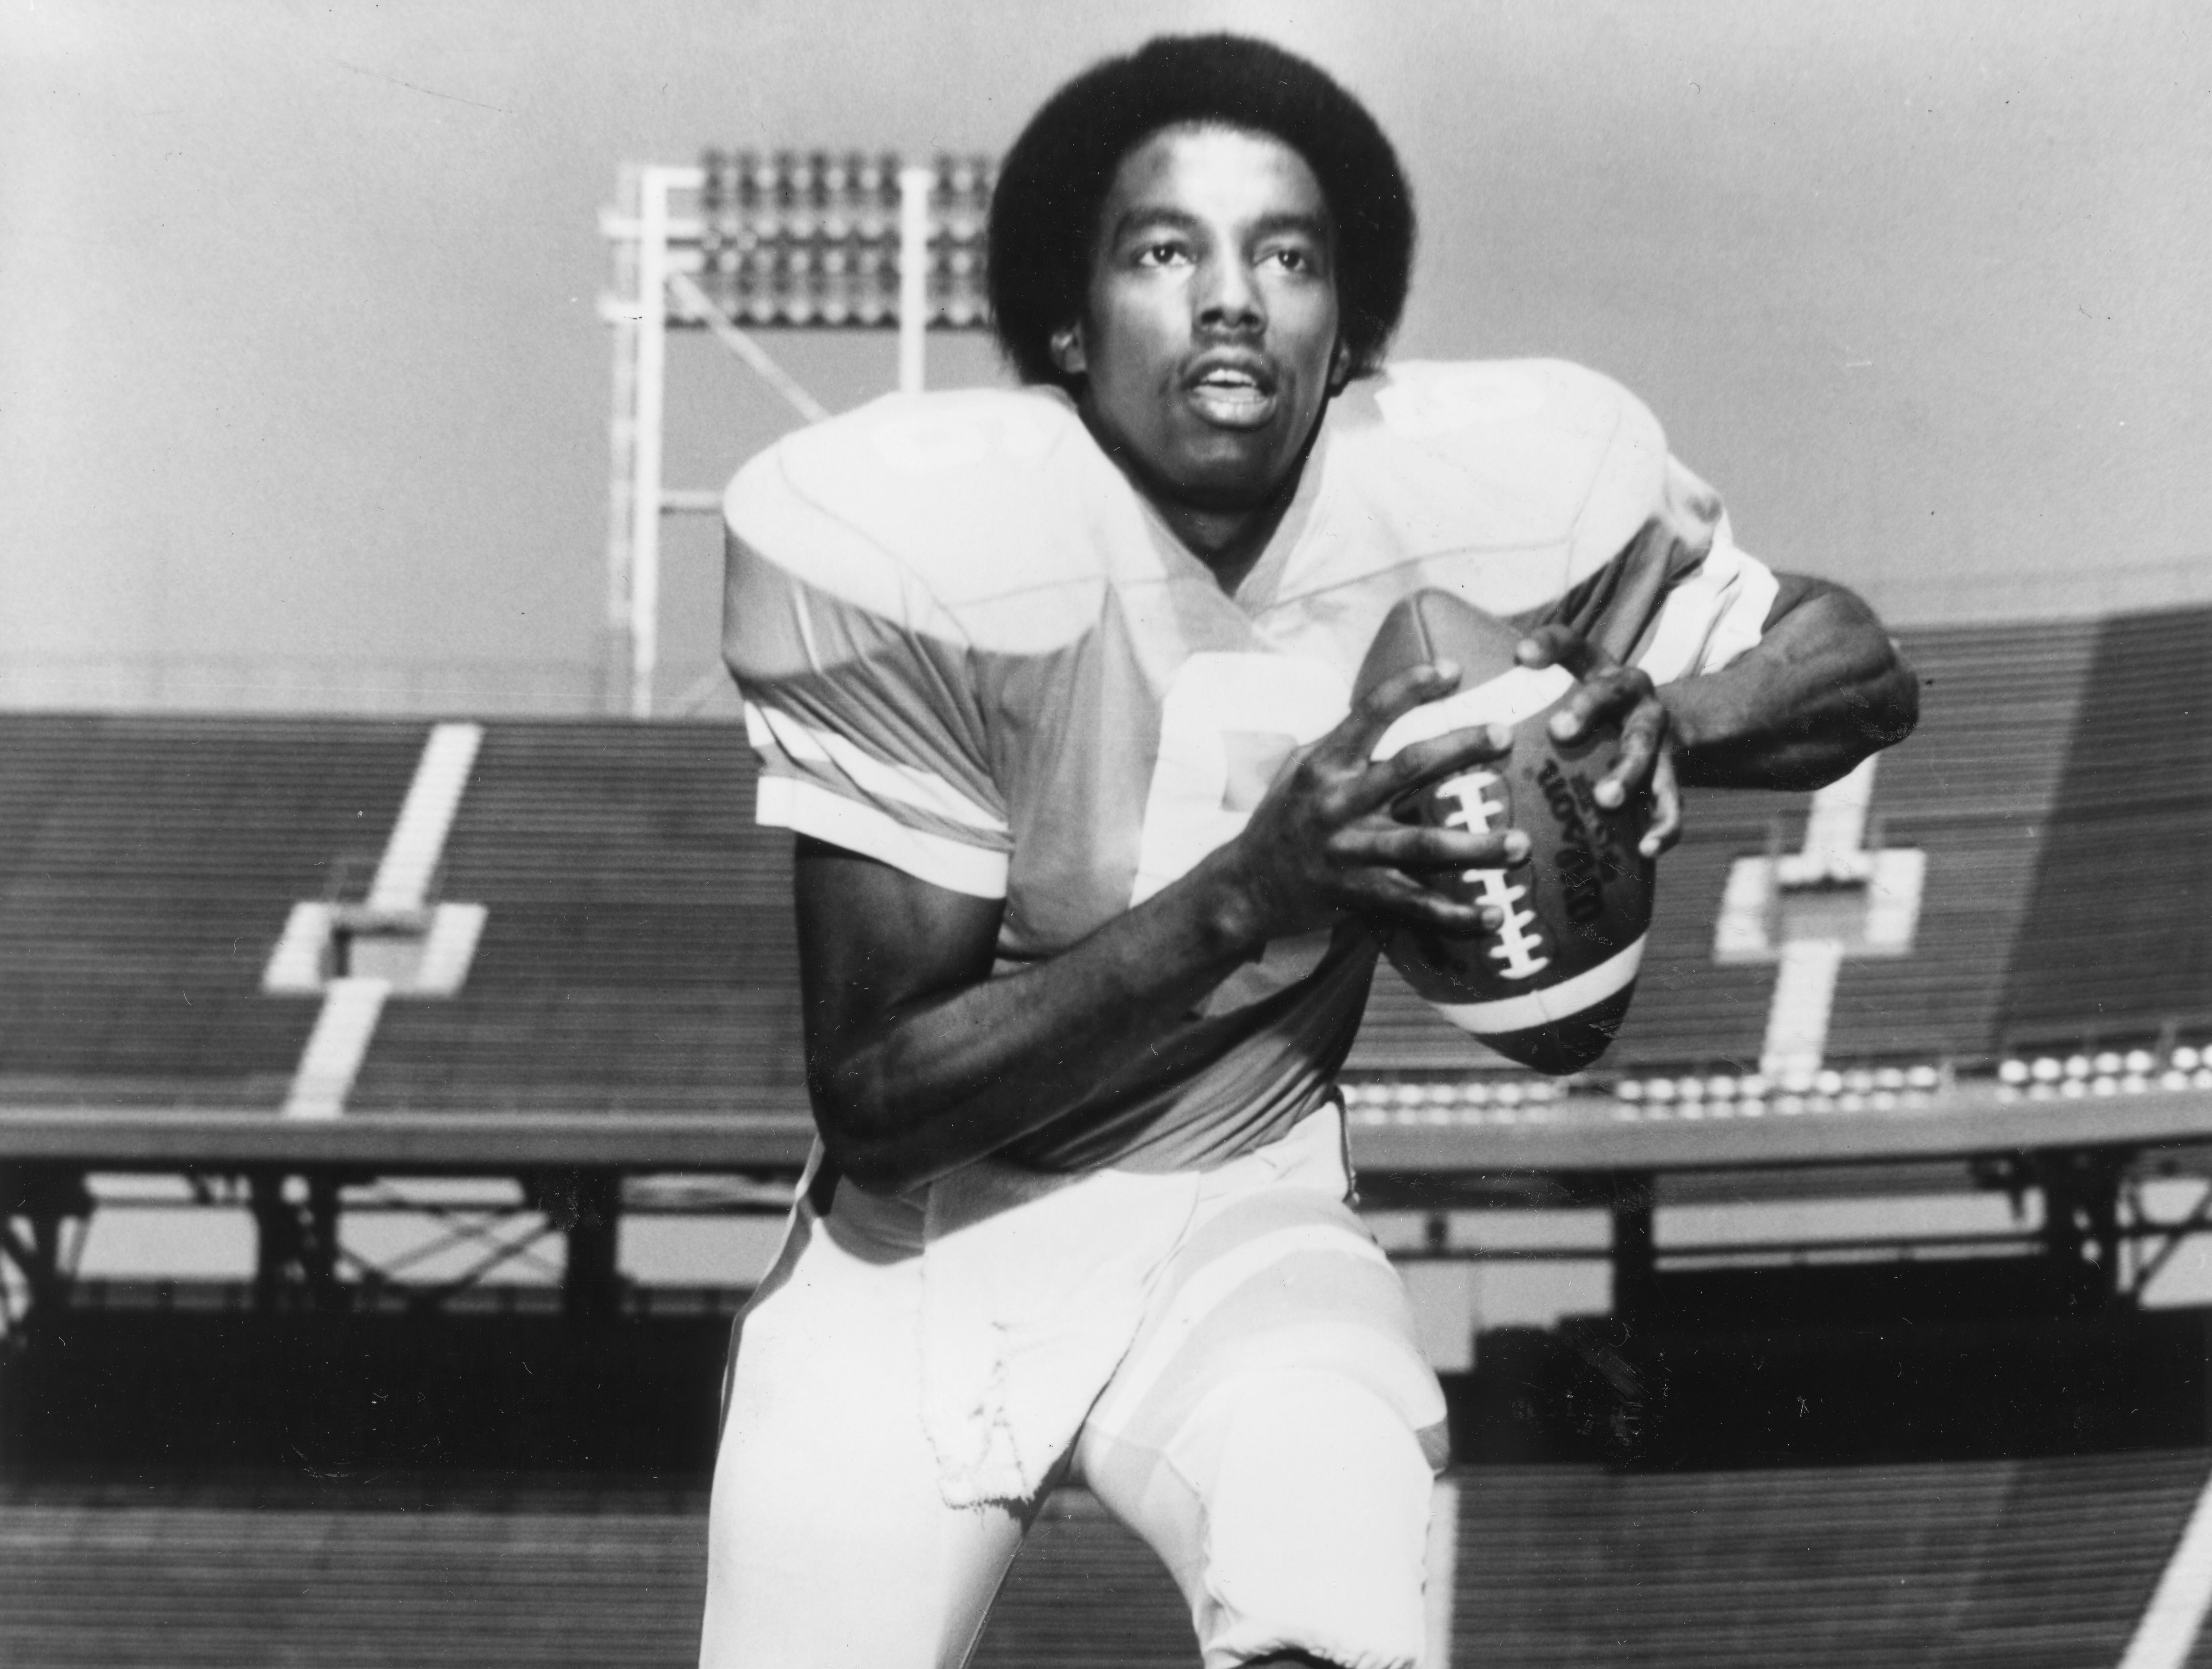 Tennessee Vols quarterback Jimmy Streater on November 7, 1978.